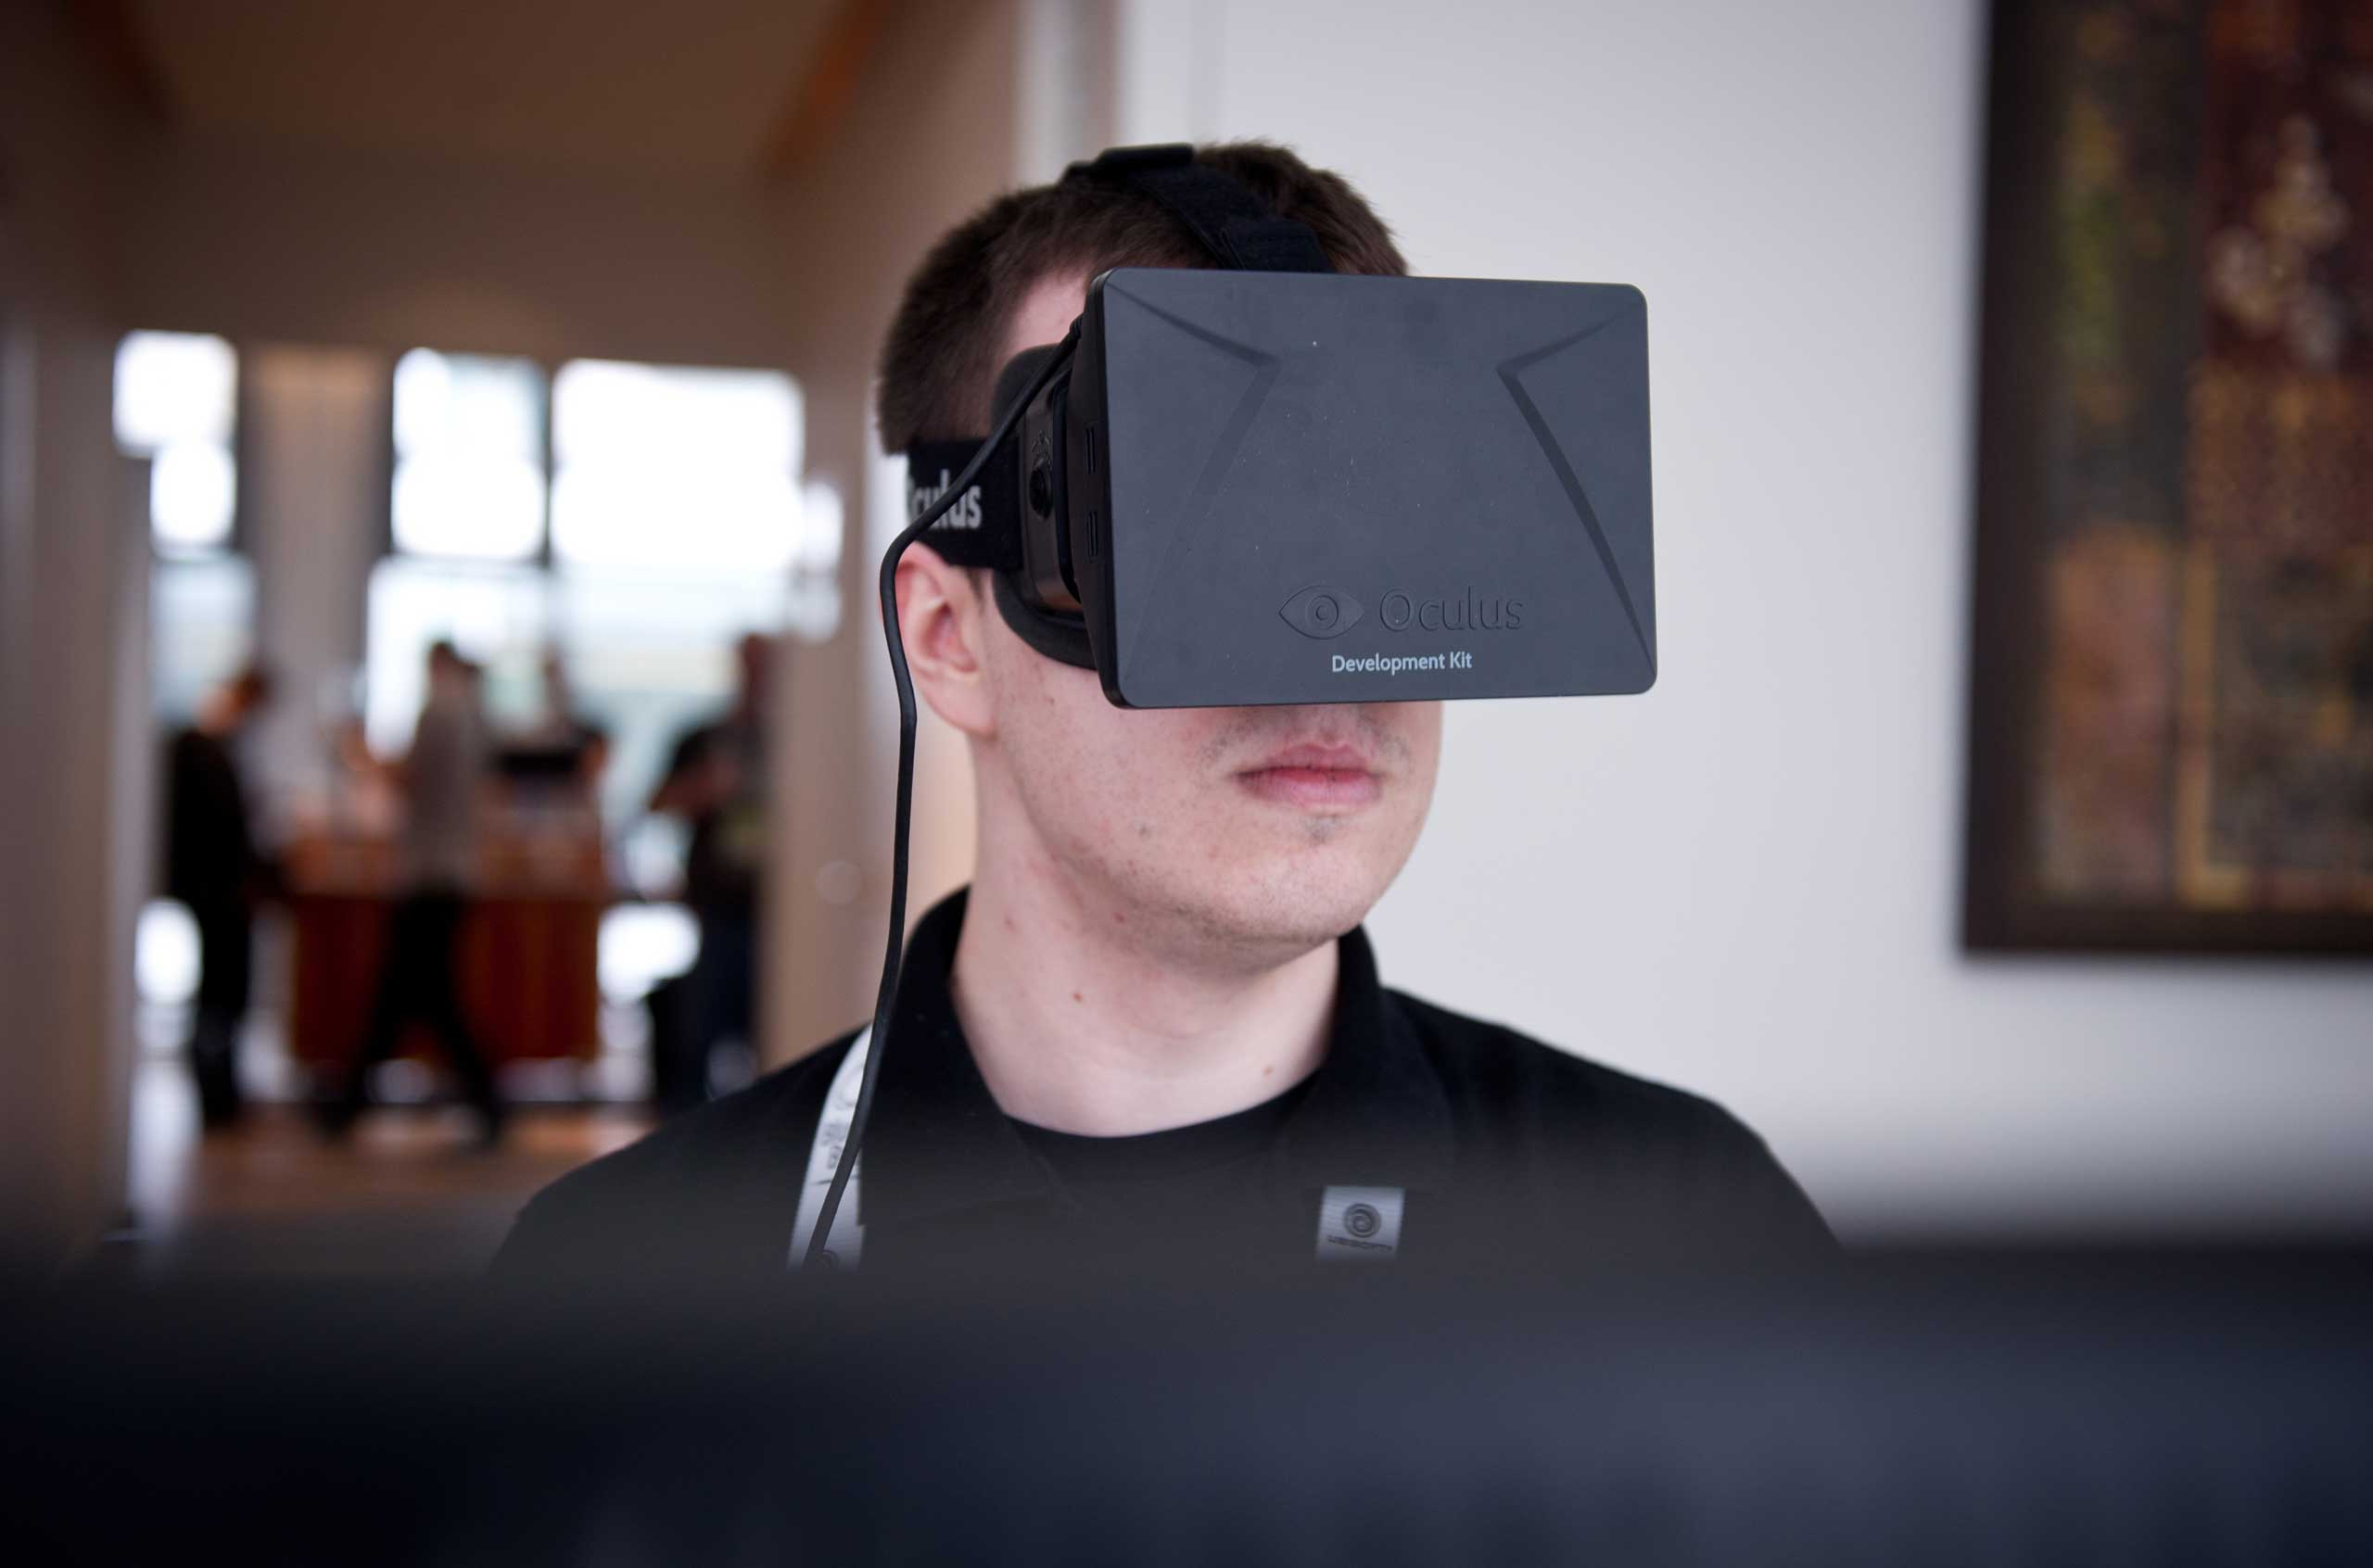 2014                                                              A man played a game with the virtual reality head-mounted display 'Oculus Rift' at International Games Week in Berlin. The display transfers the eye movements to the game in real time.